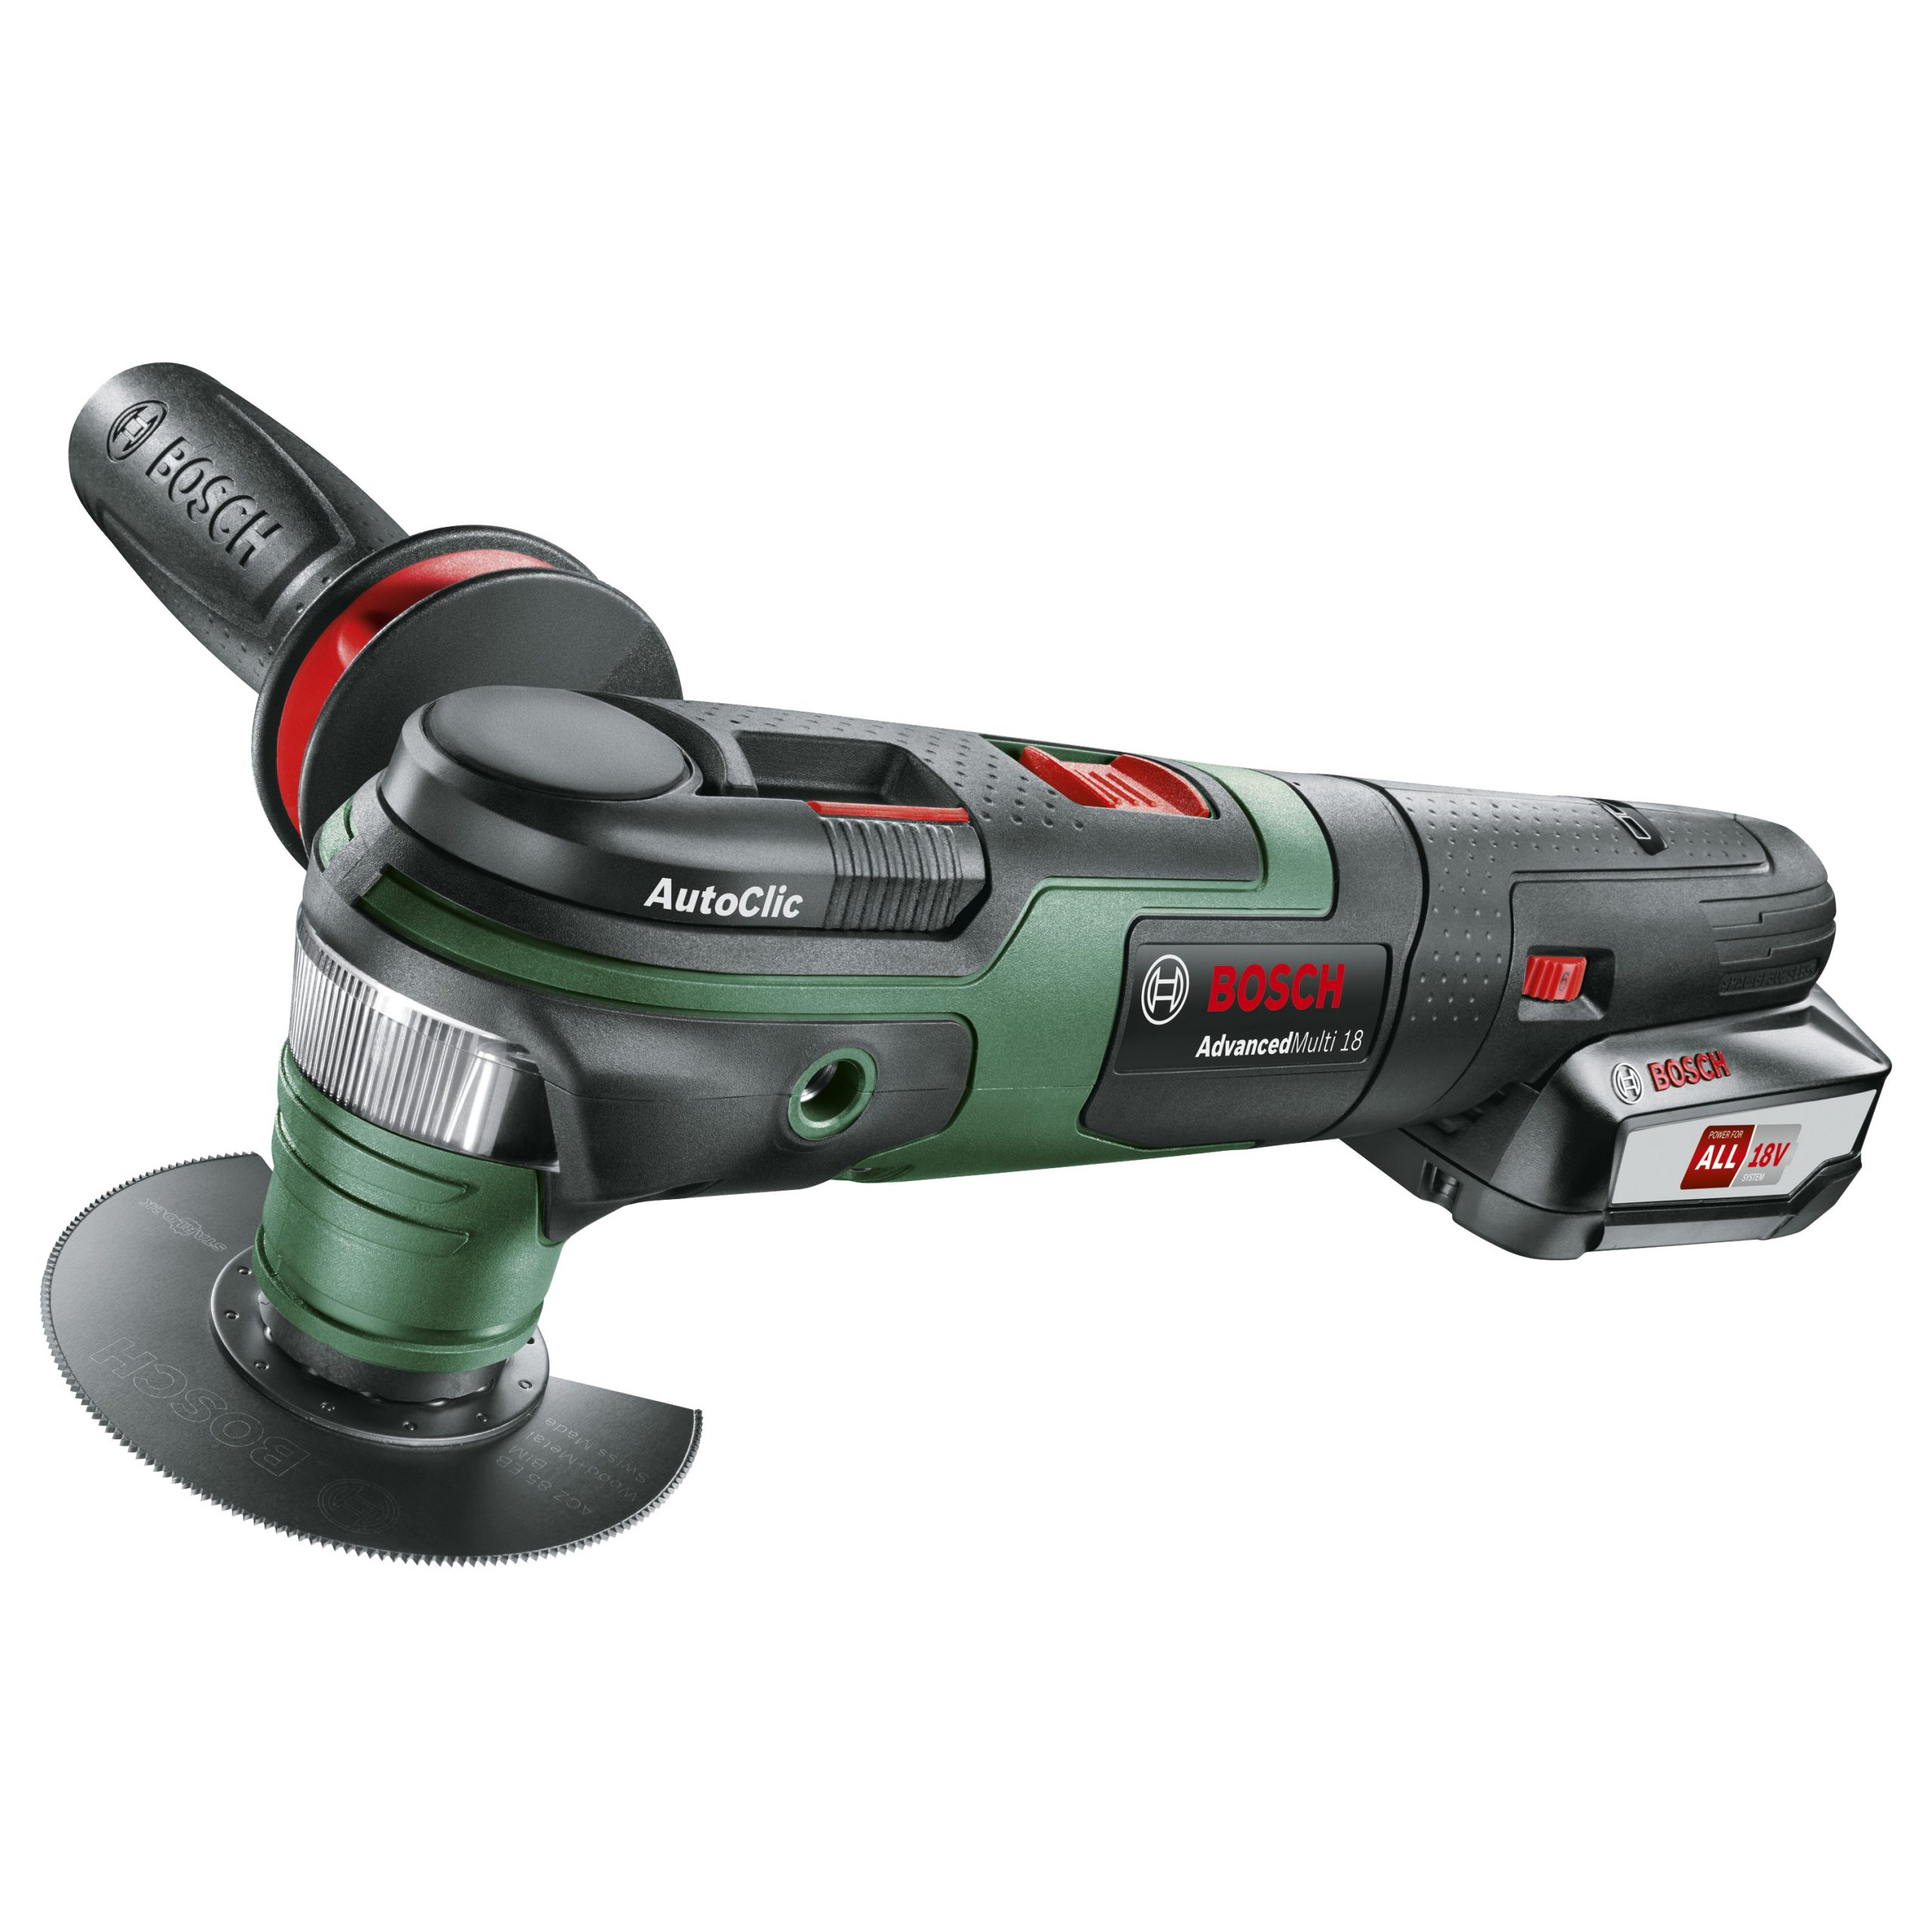 Bosch multitool Advanced Multi 18 volt lithium-ion